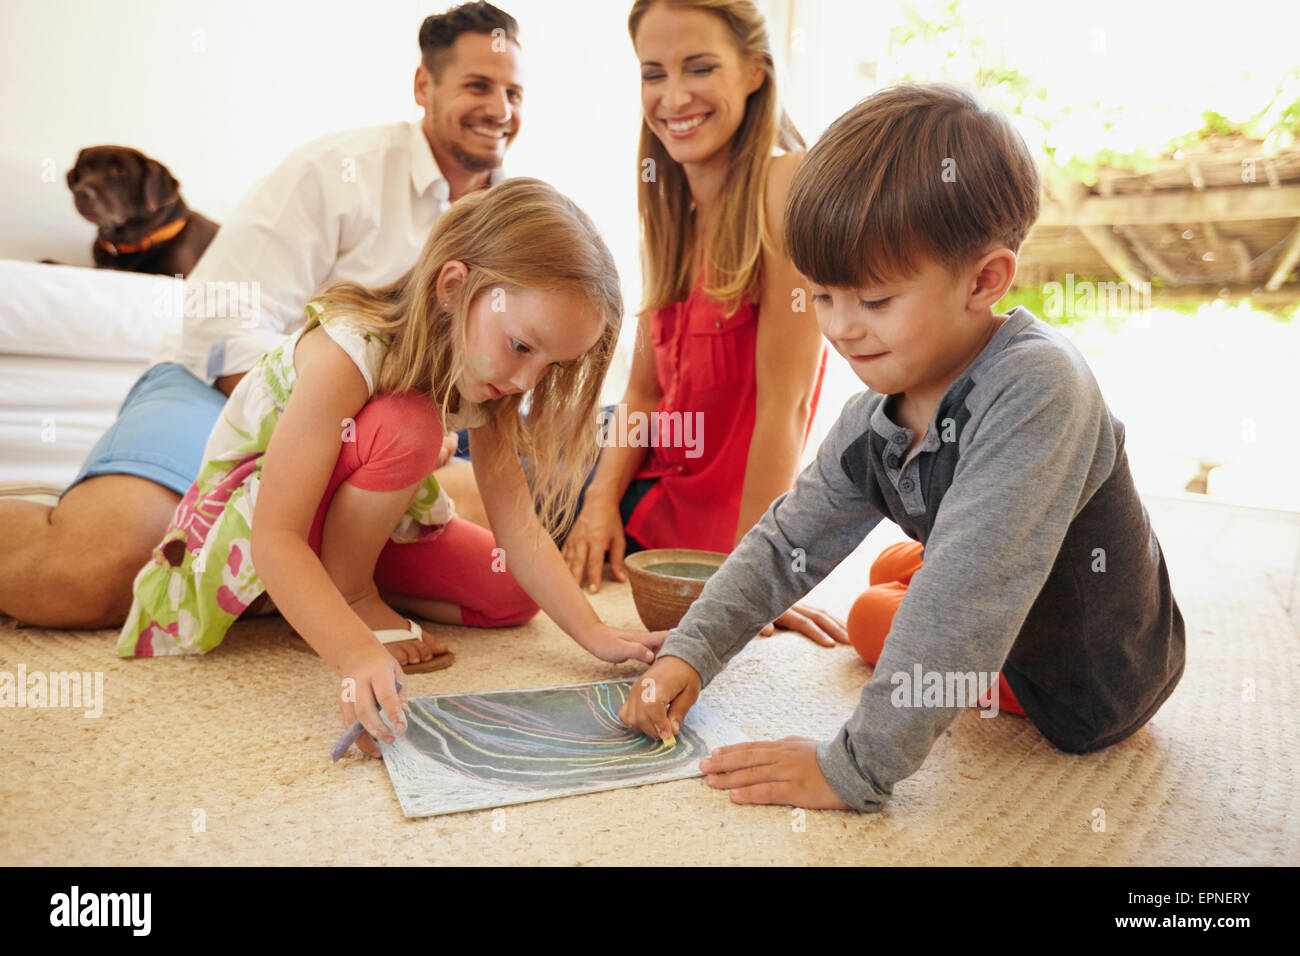 Little boy and girl drawing with chalk colors while sitting on floor. Children drawing with their parents in living - Stock Image